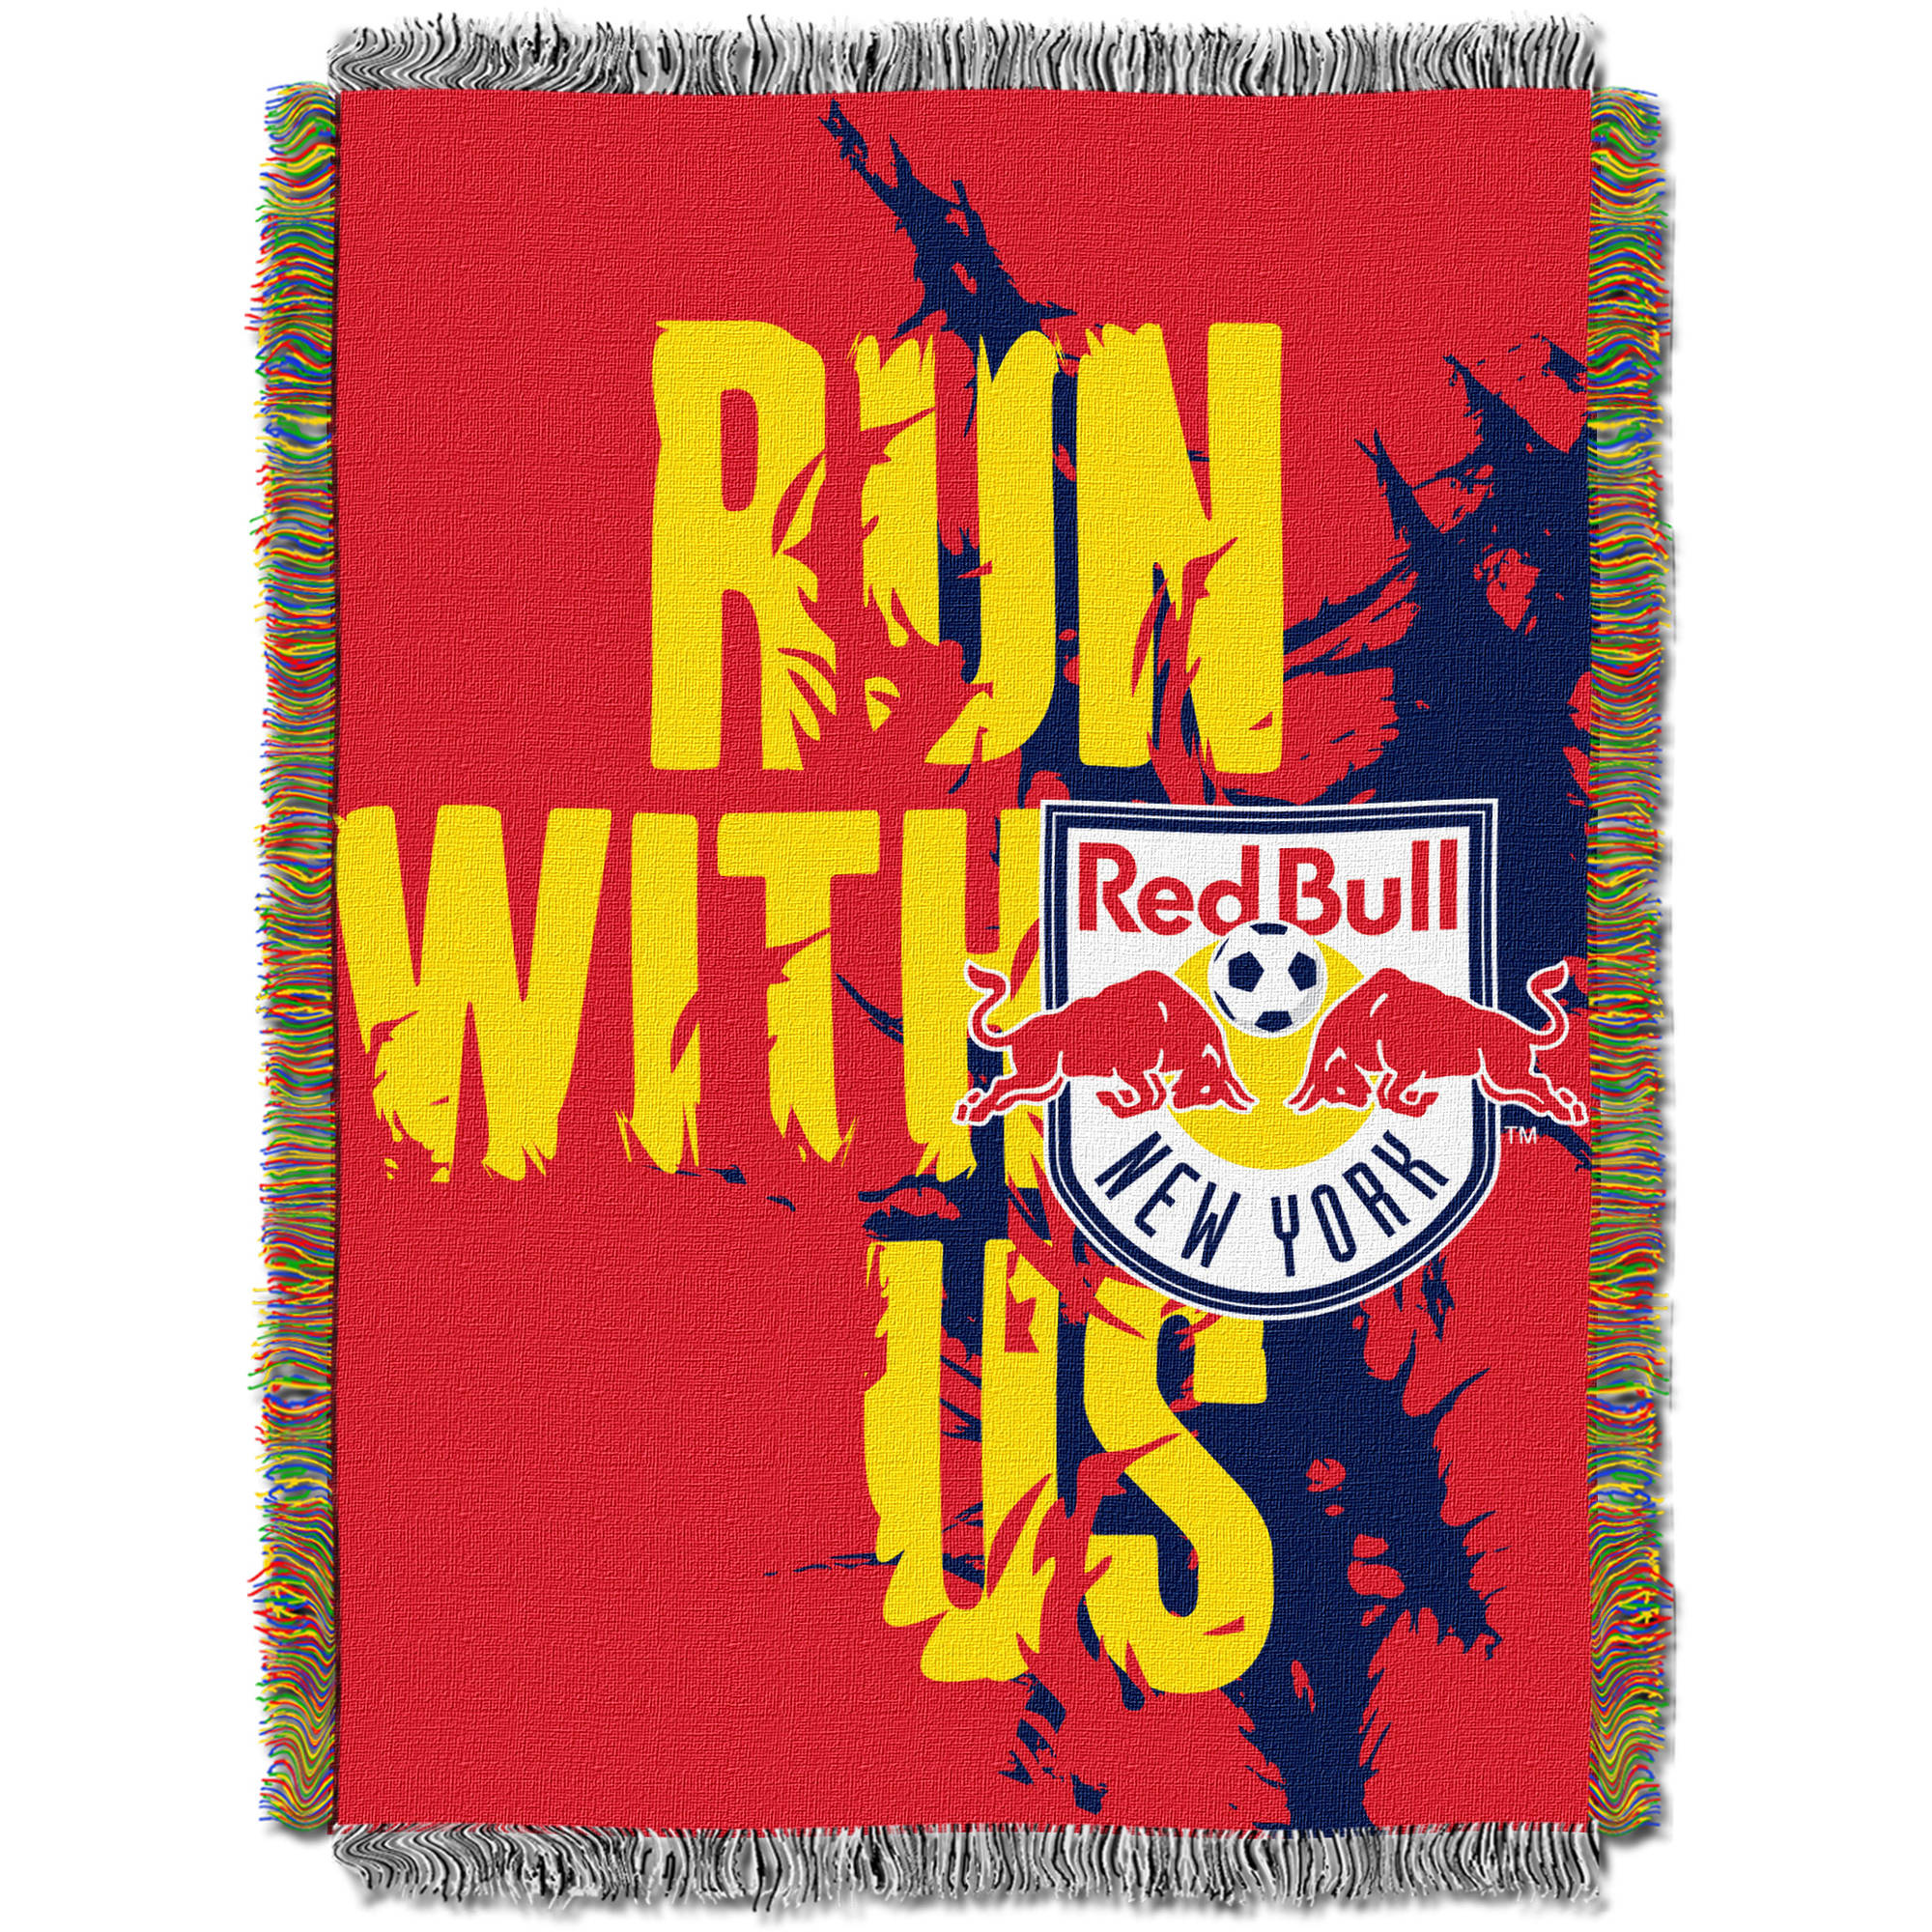 "MLS New York Red Bulls Handmade 48"" x 60"" Woven Tapestry Throw"